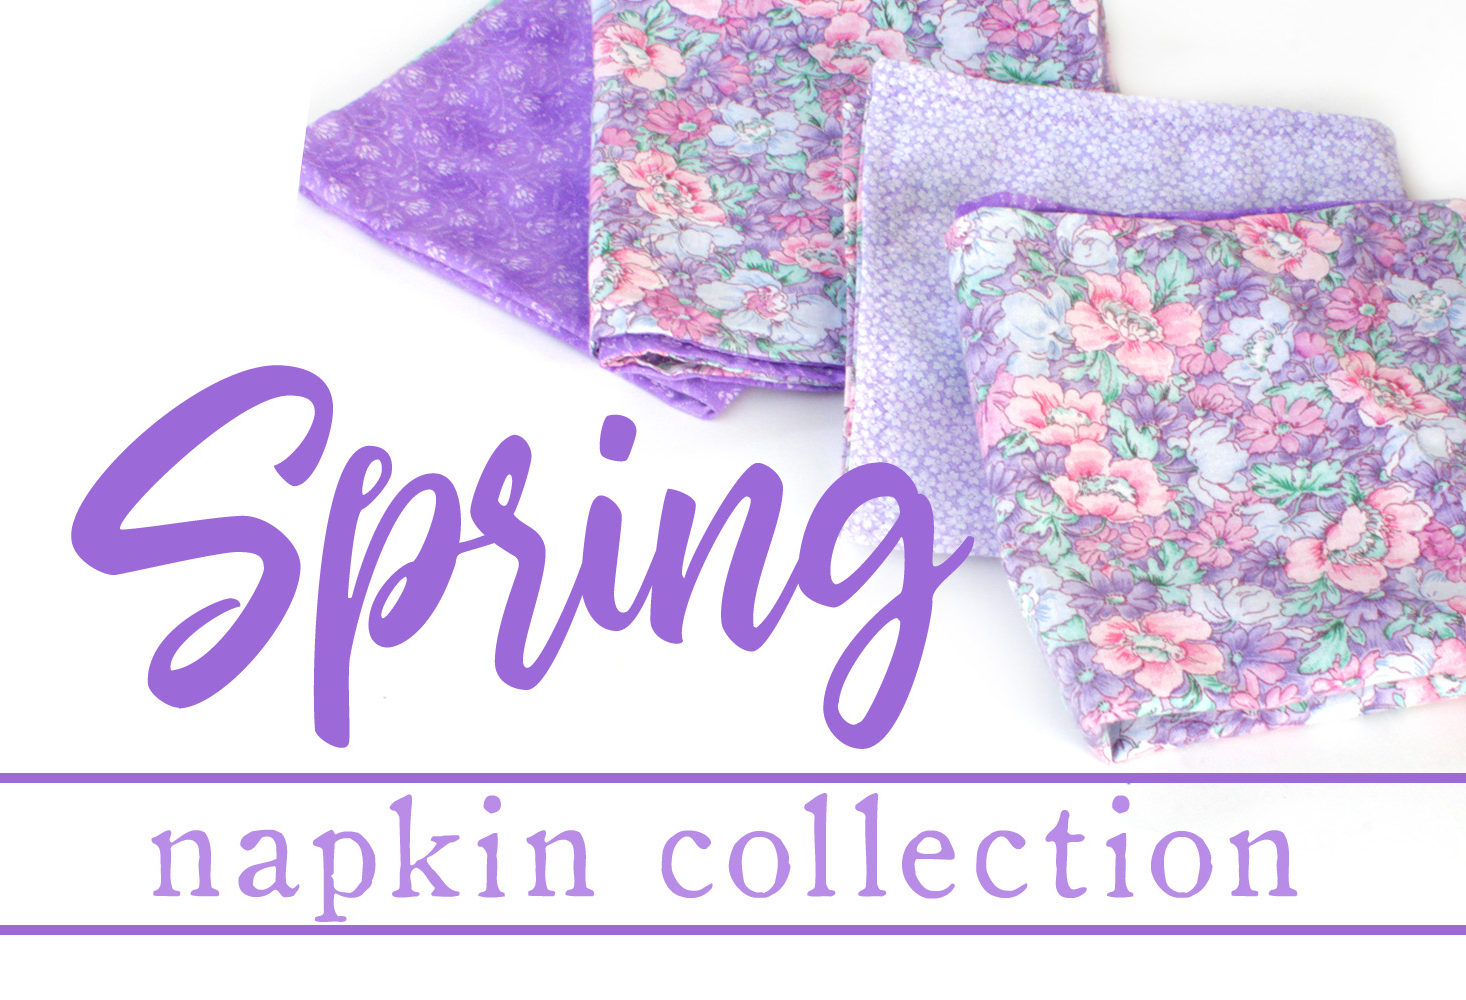 Spring 2020 Napkin Collection by Mara & Maria